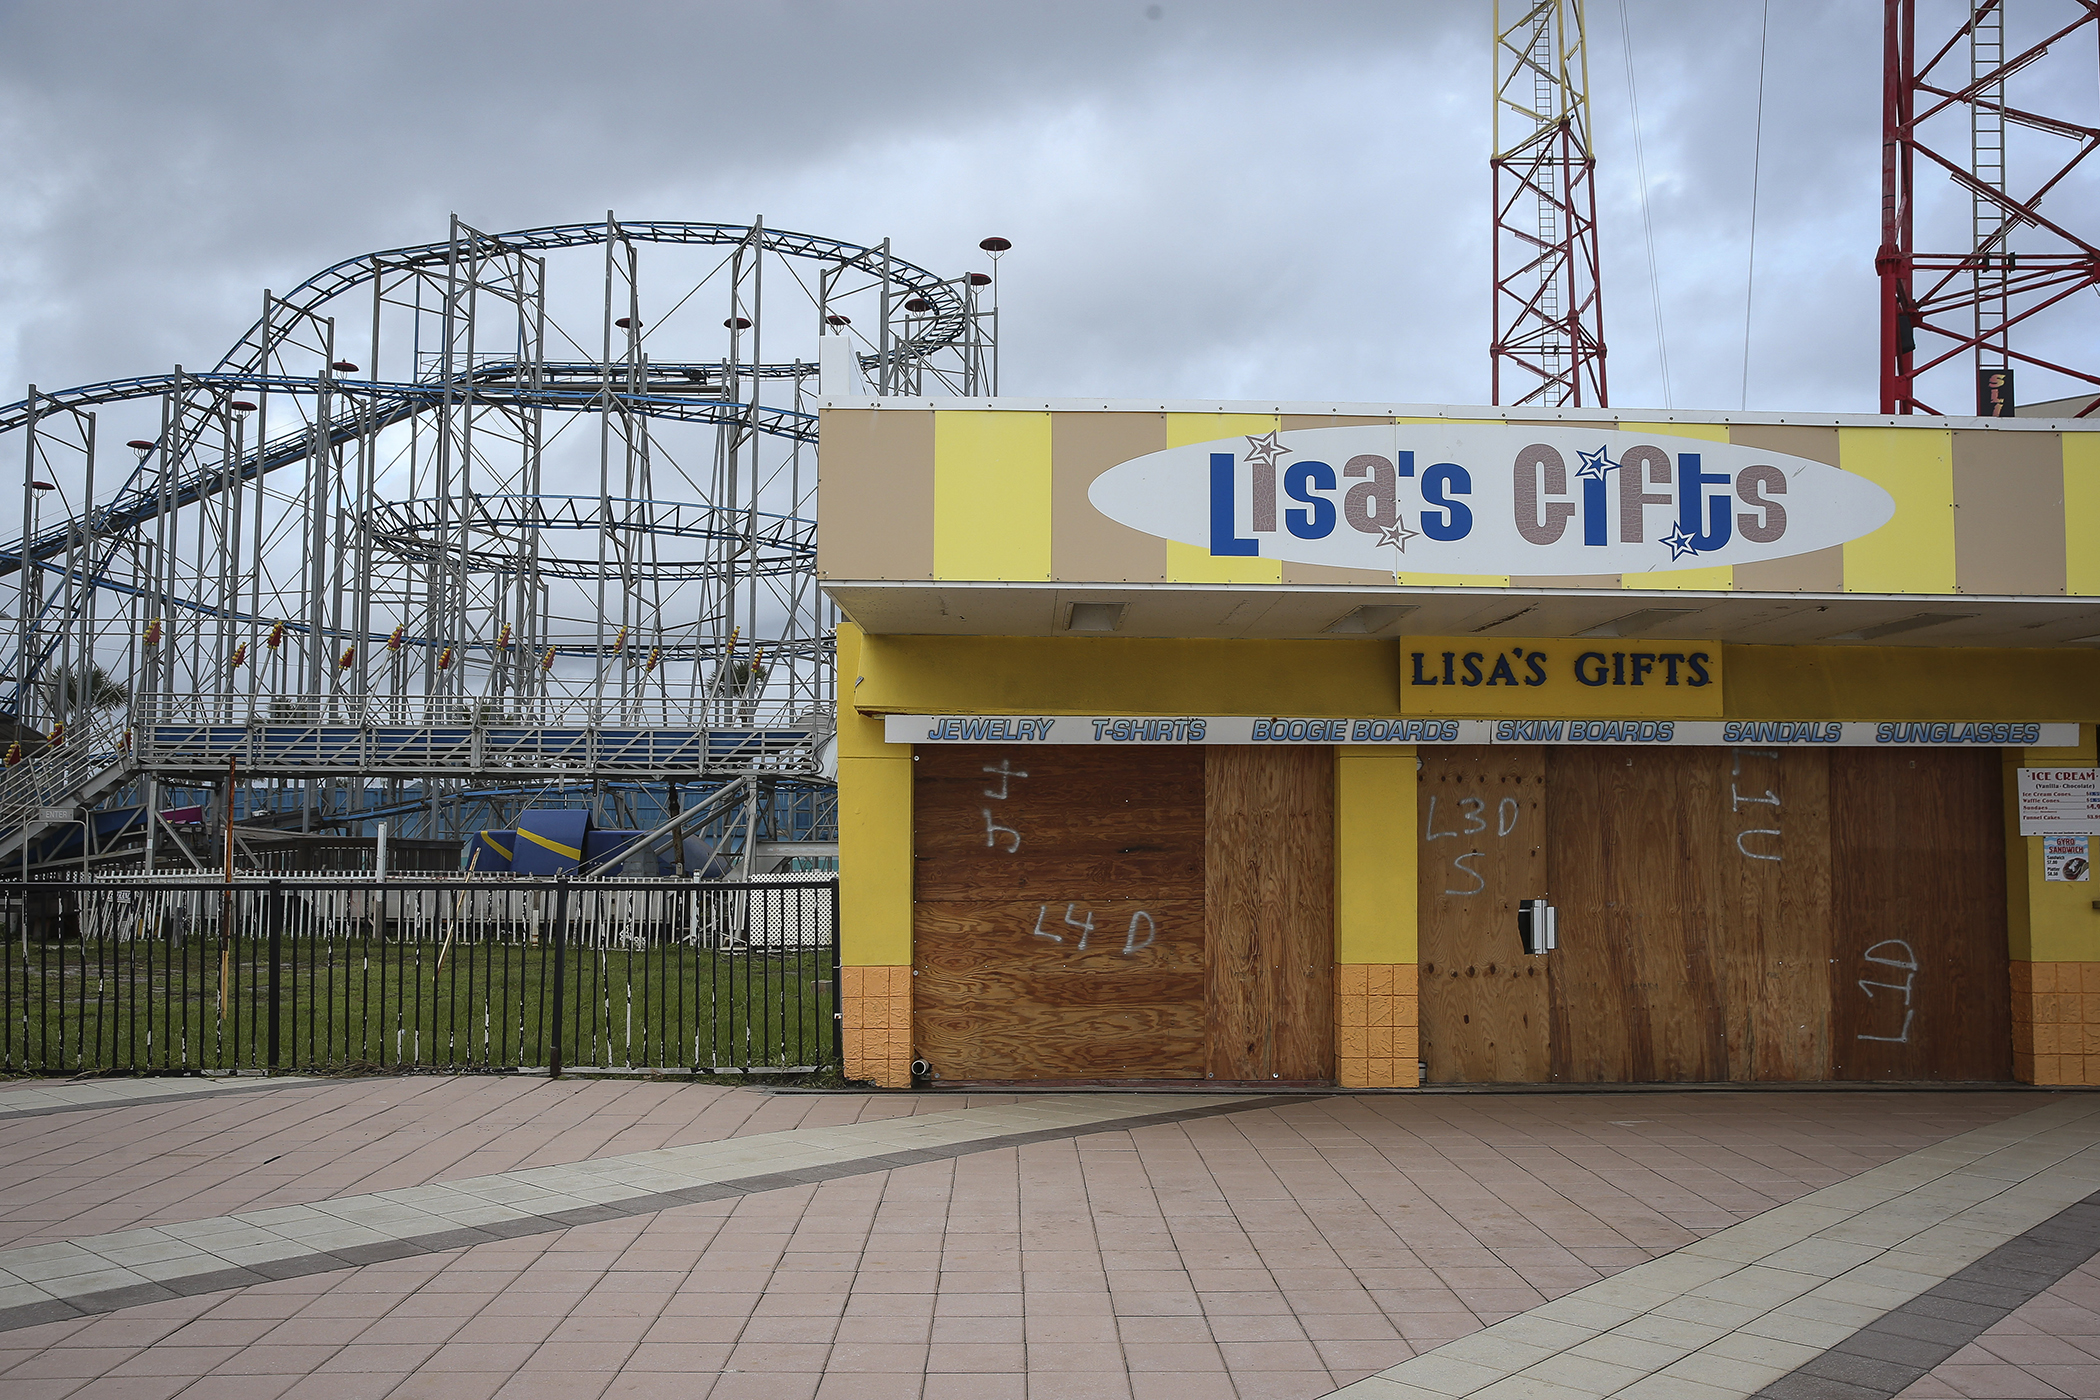 Lisa's Gifts at the Daytona Beach Boardwalk and Pier stands closed and boarded up ahead of Hurricane Matthew in Daytona Beach, Fla. on Oct. 6, 2016.